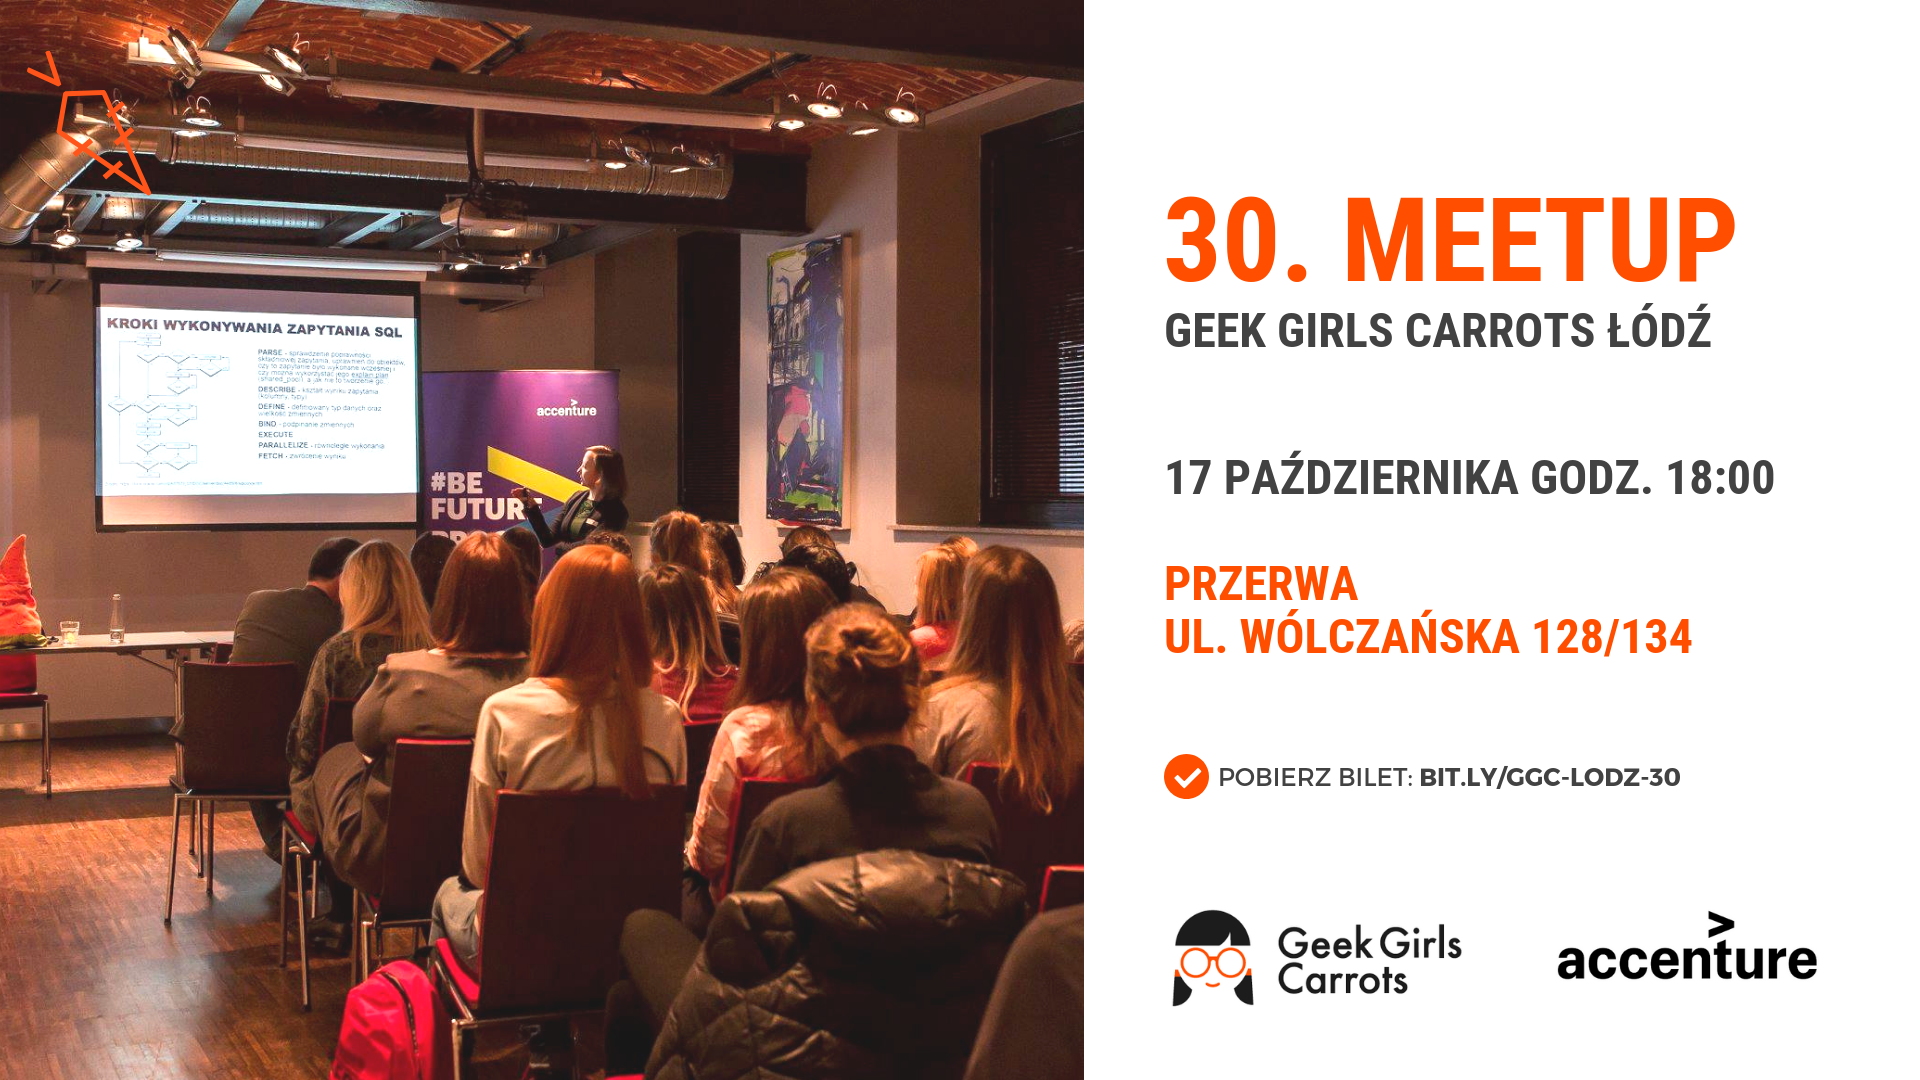 geek-girls-carrots-lodz-30